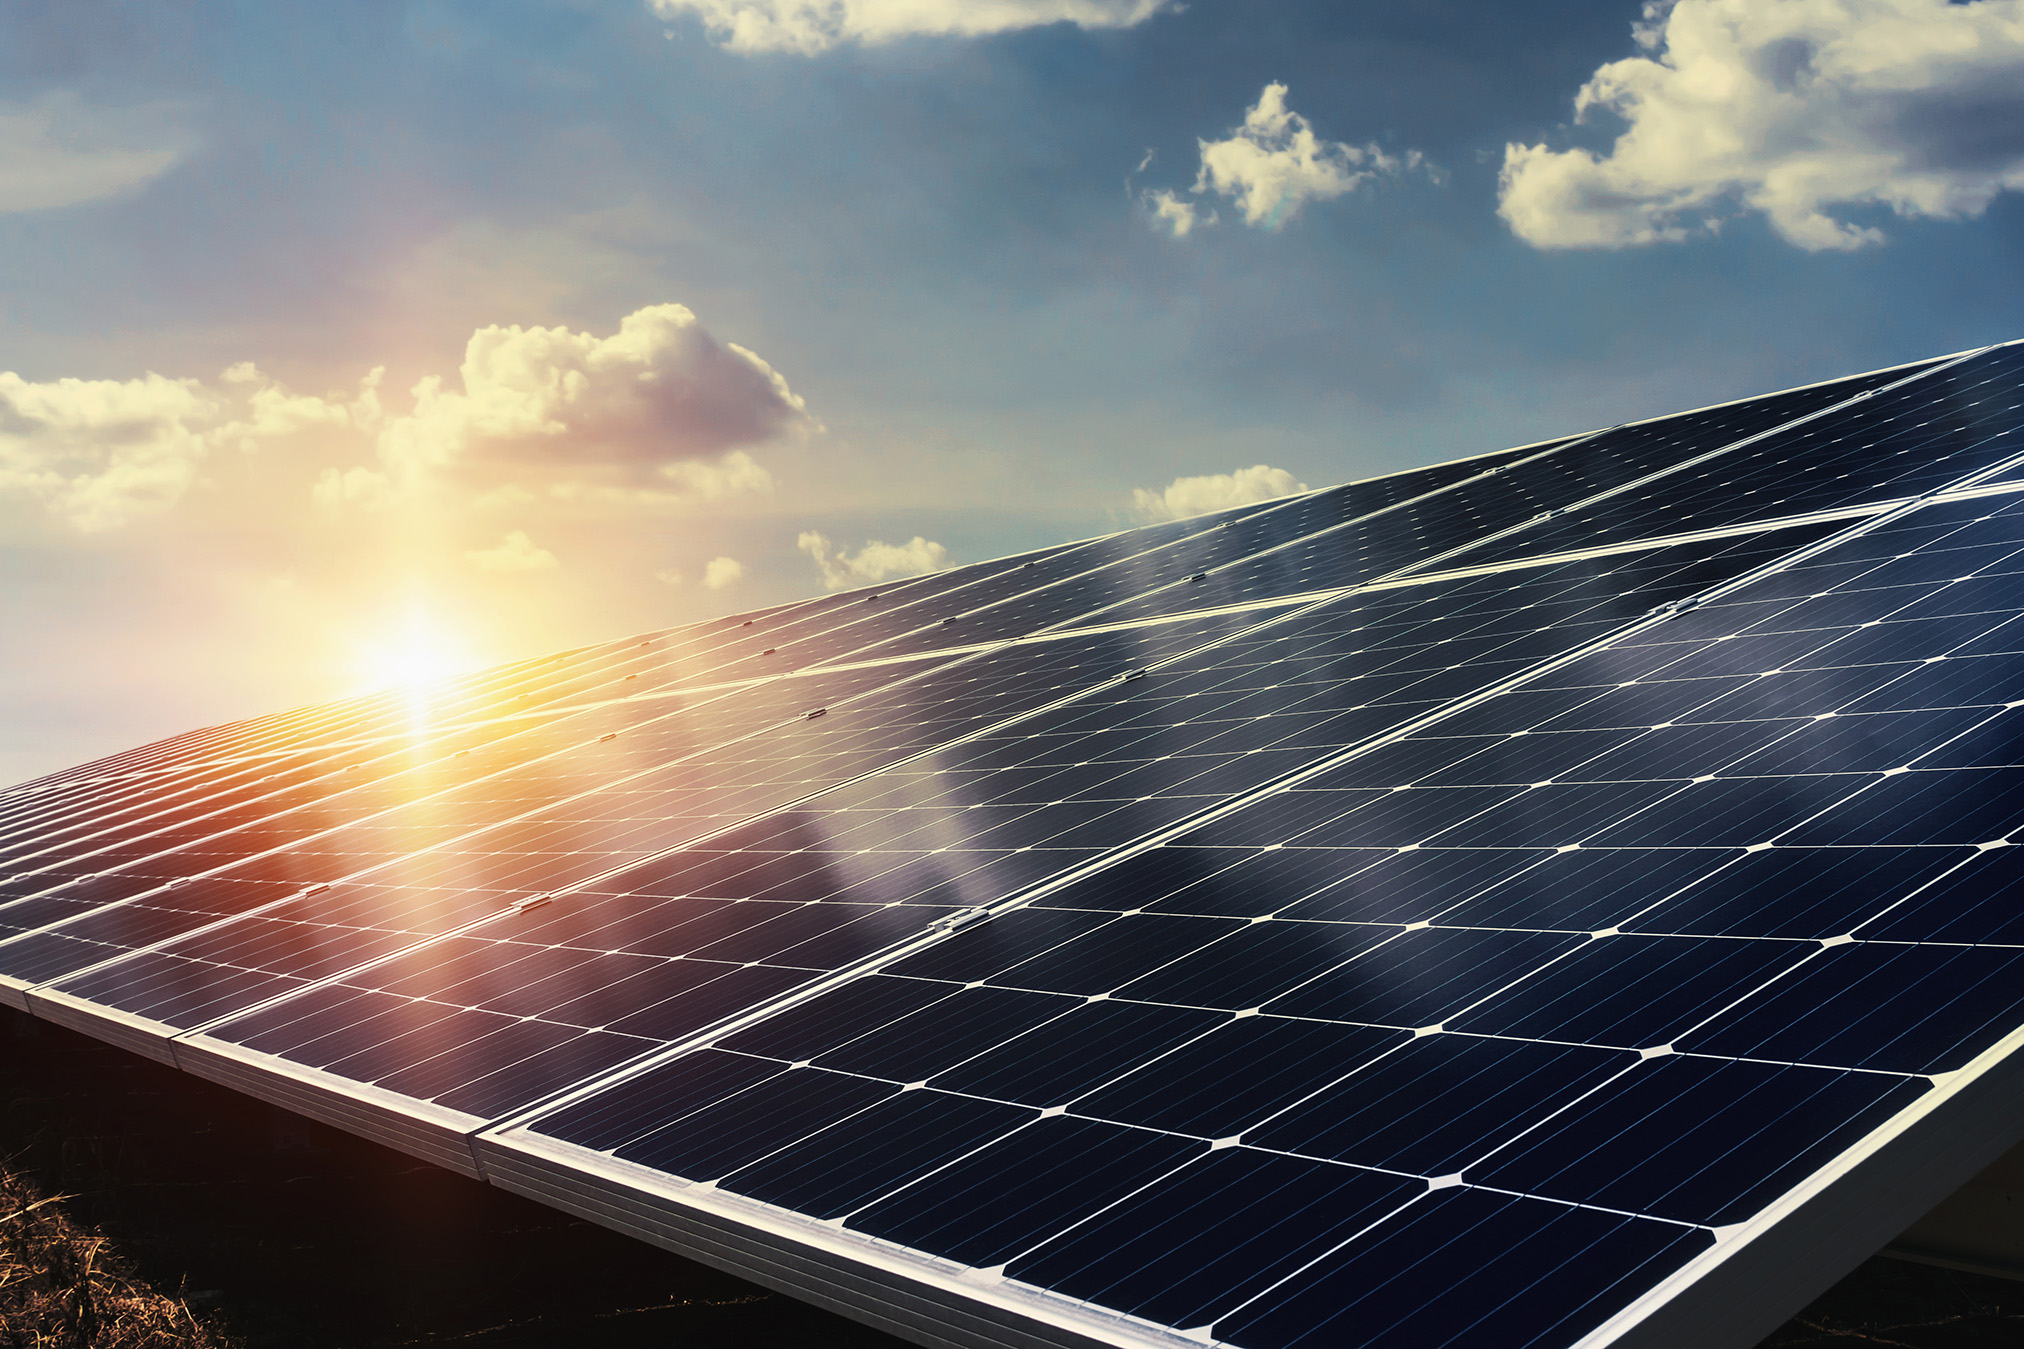 solar panel with sunlight and blue sky background. concept clean